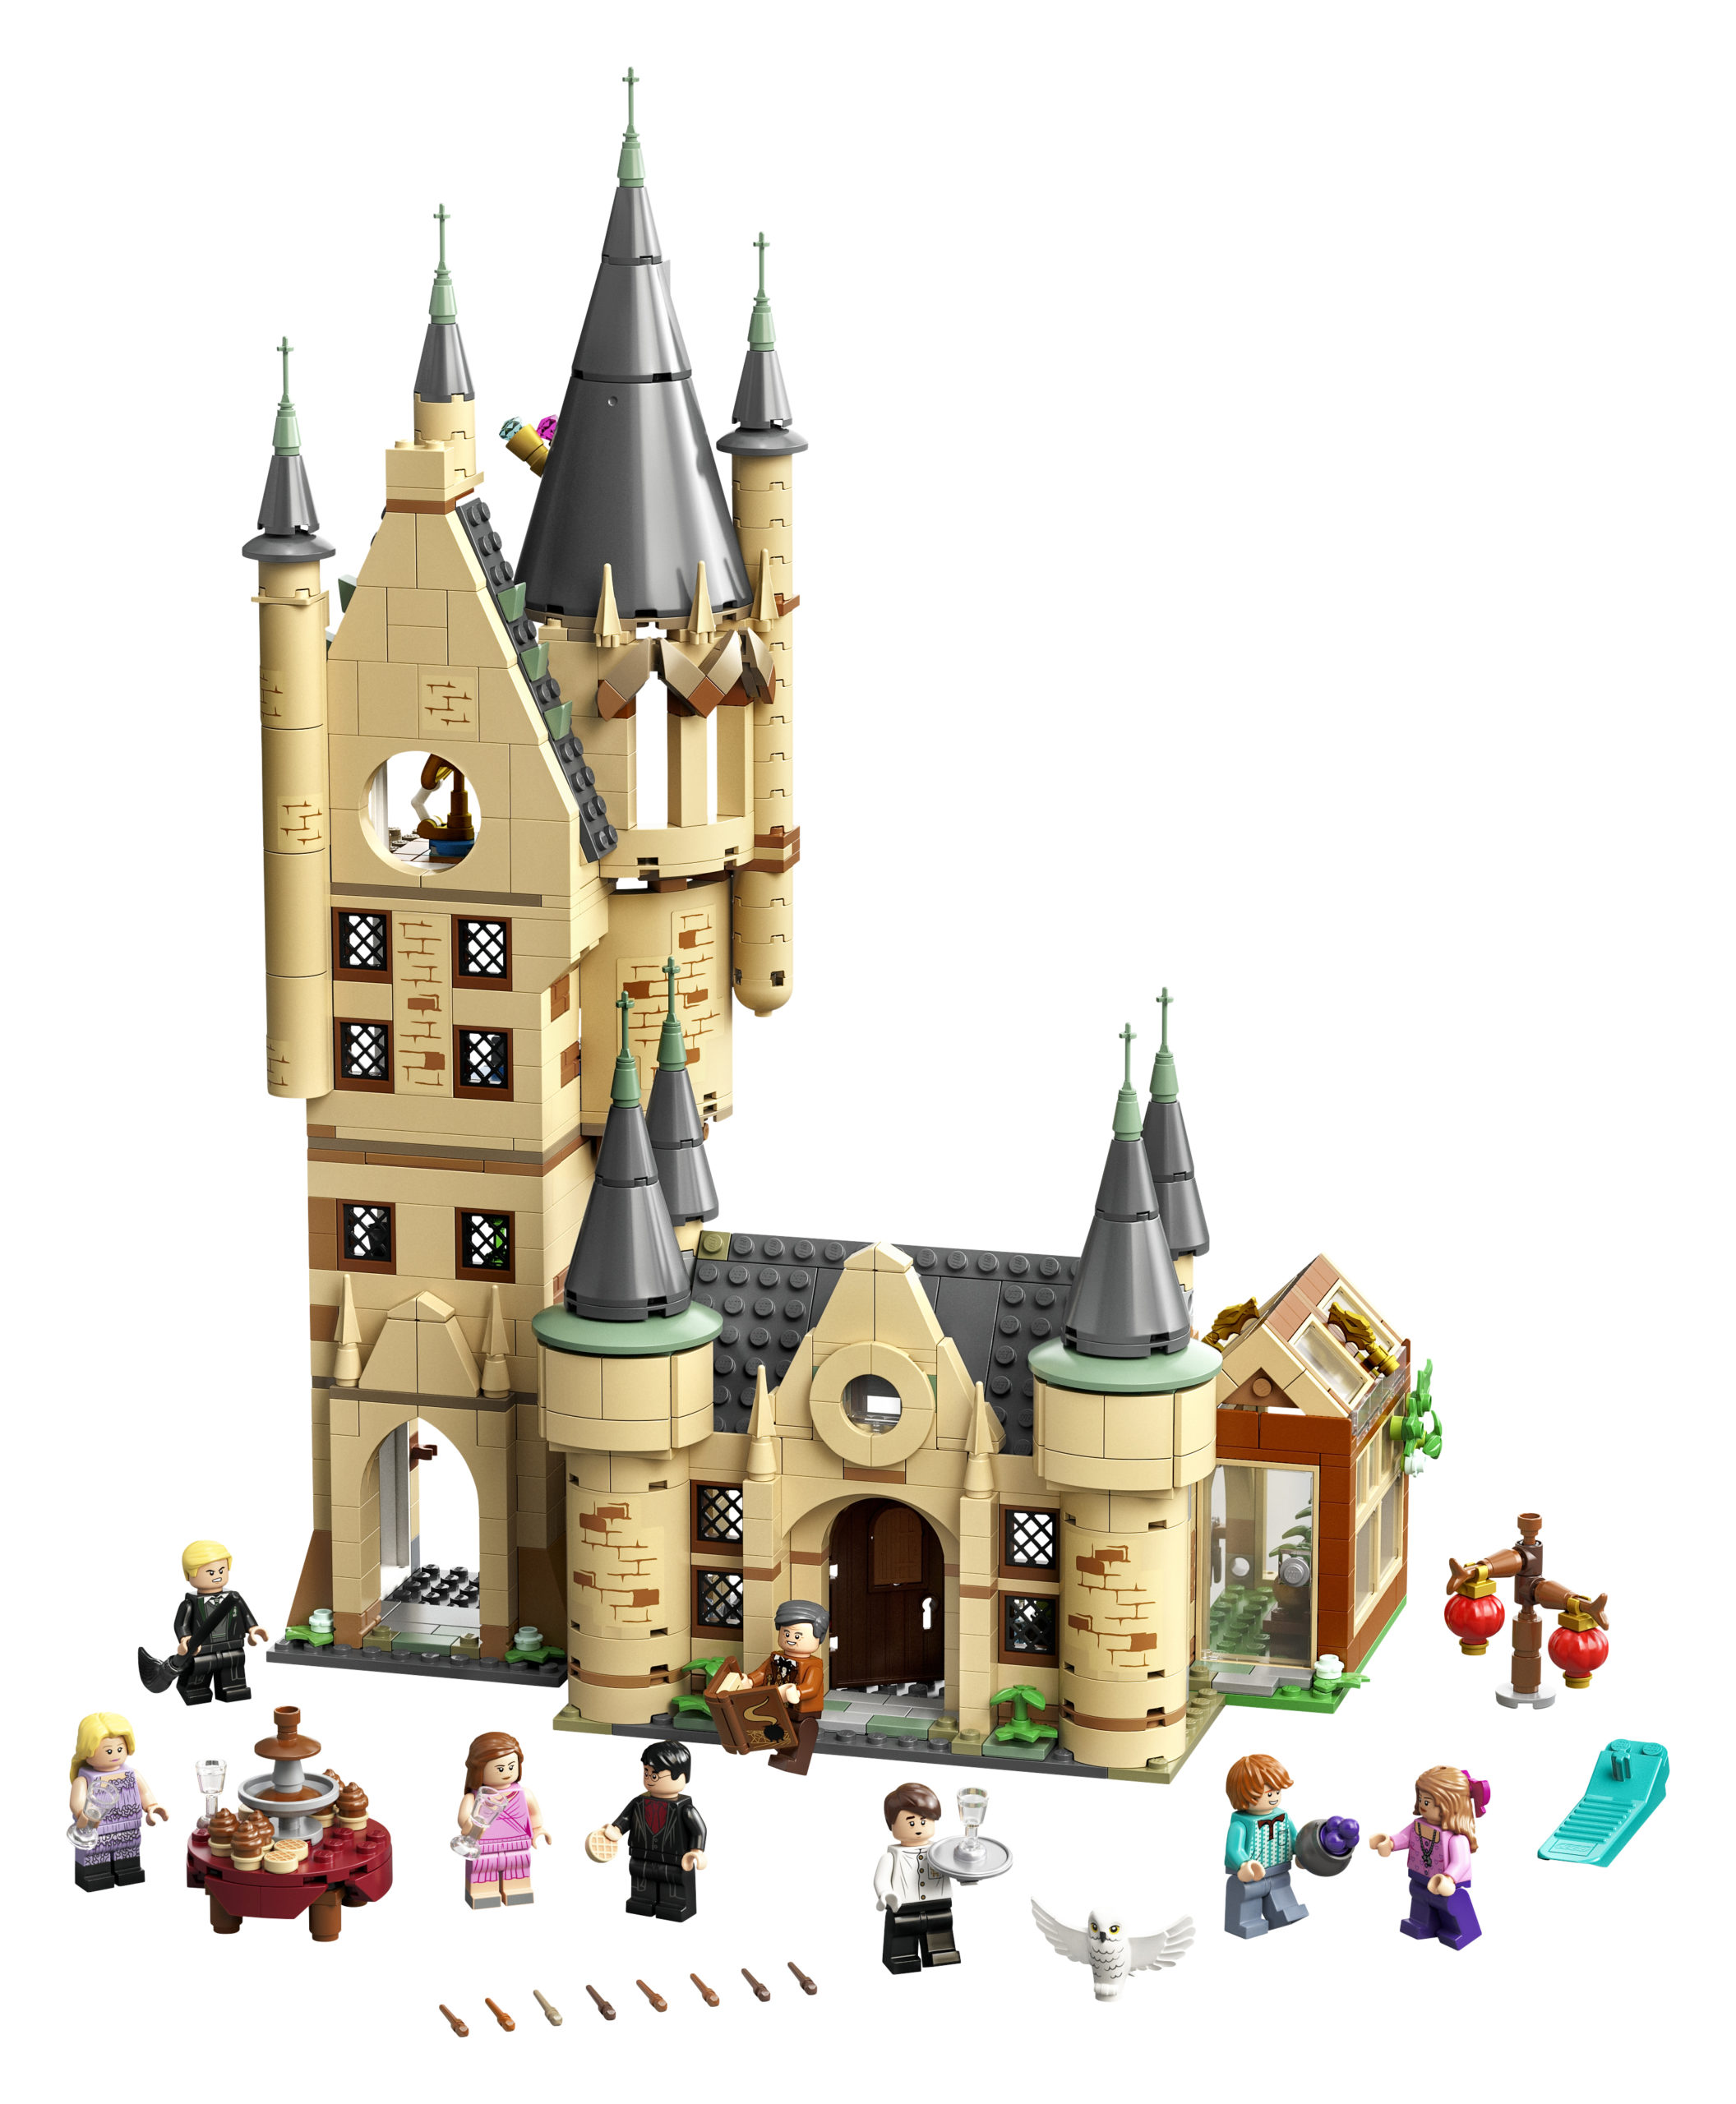 The Astronomy Tower set comes with several minifigures and accessories.